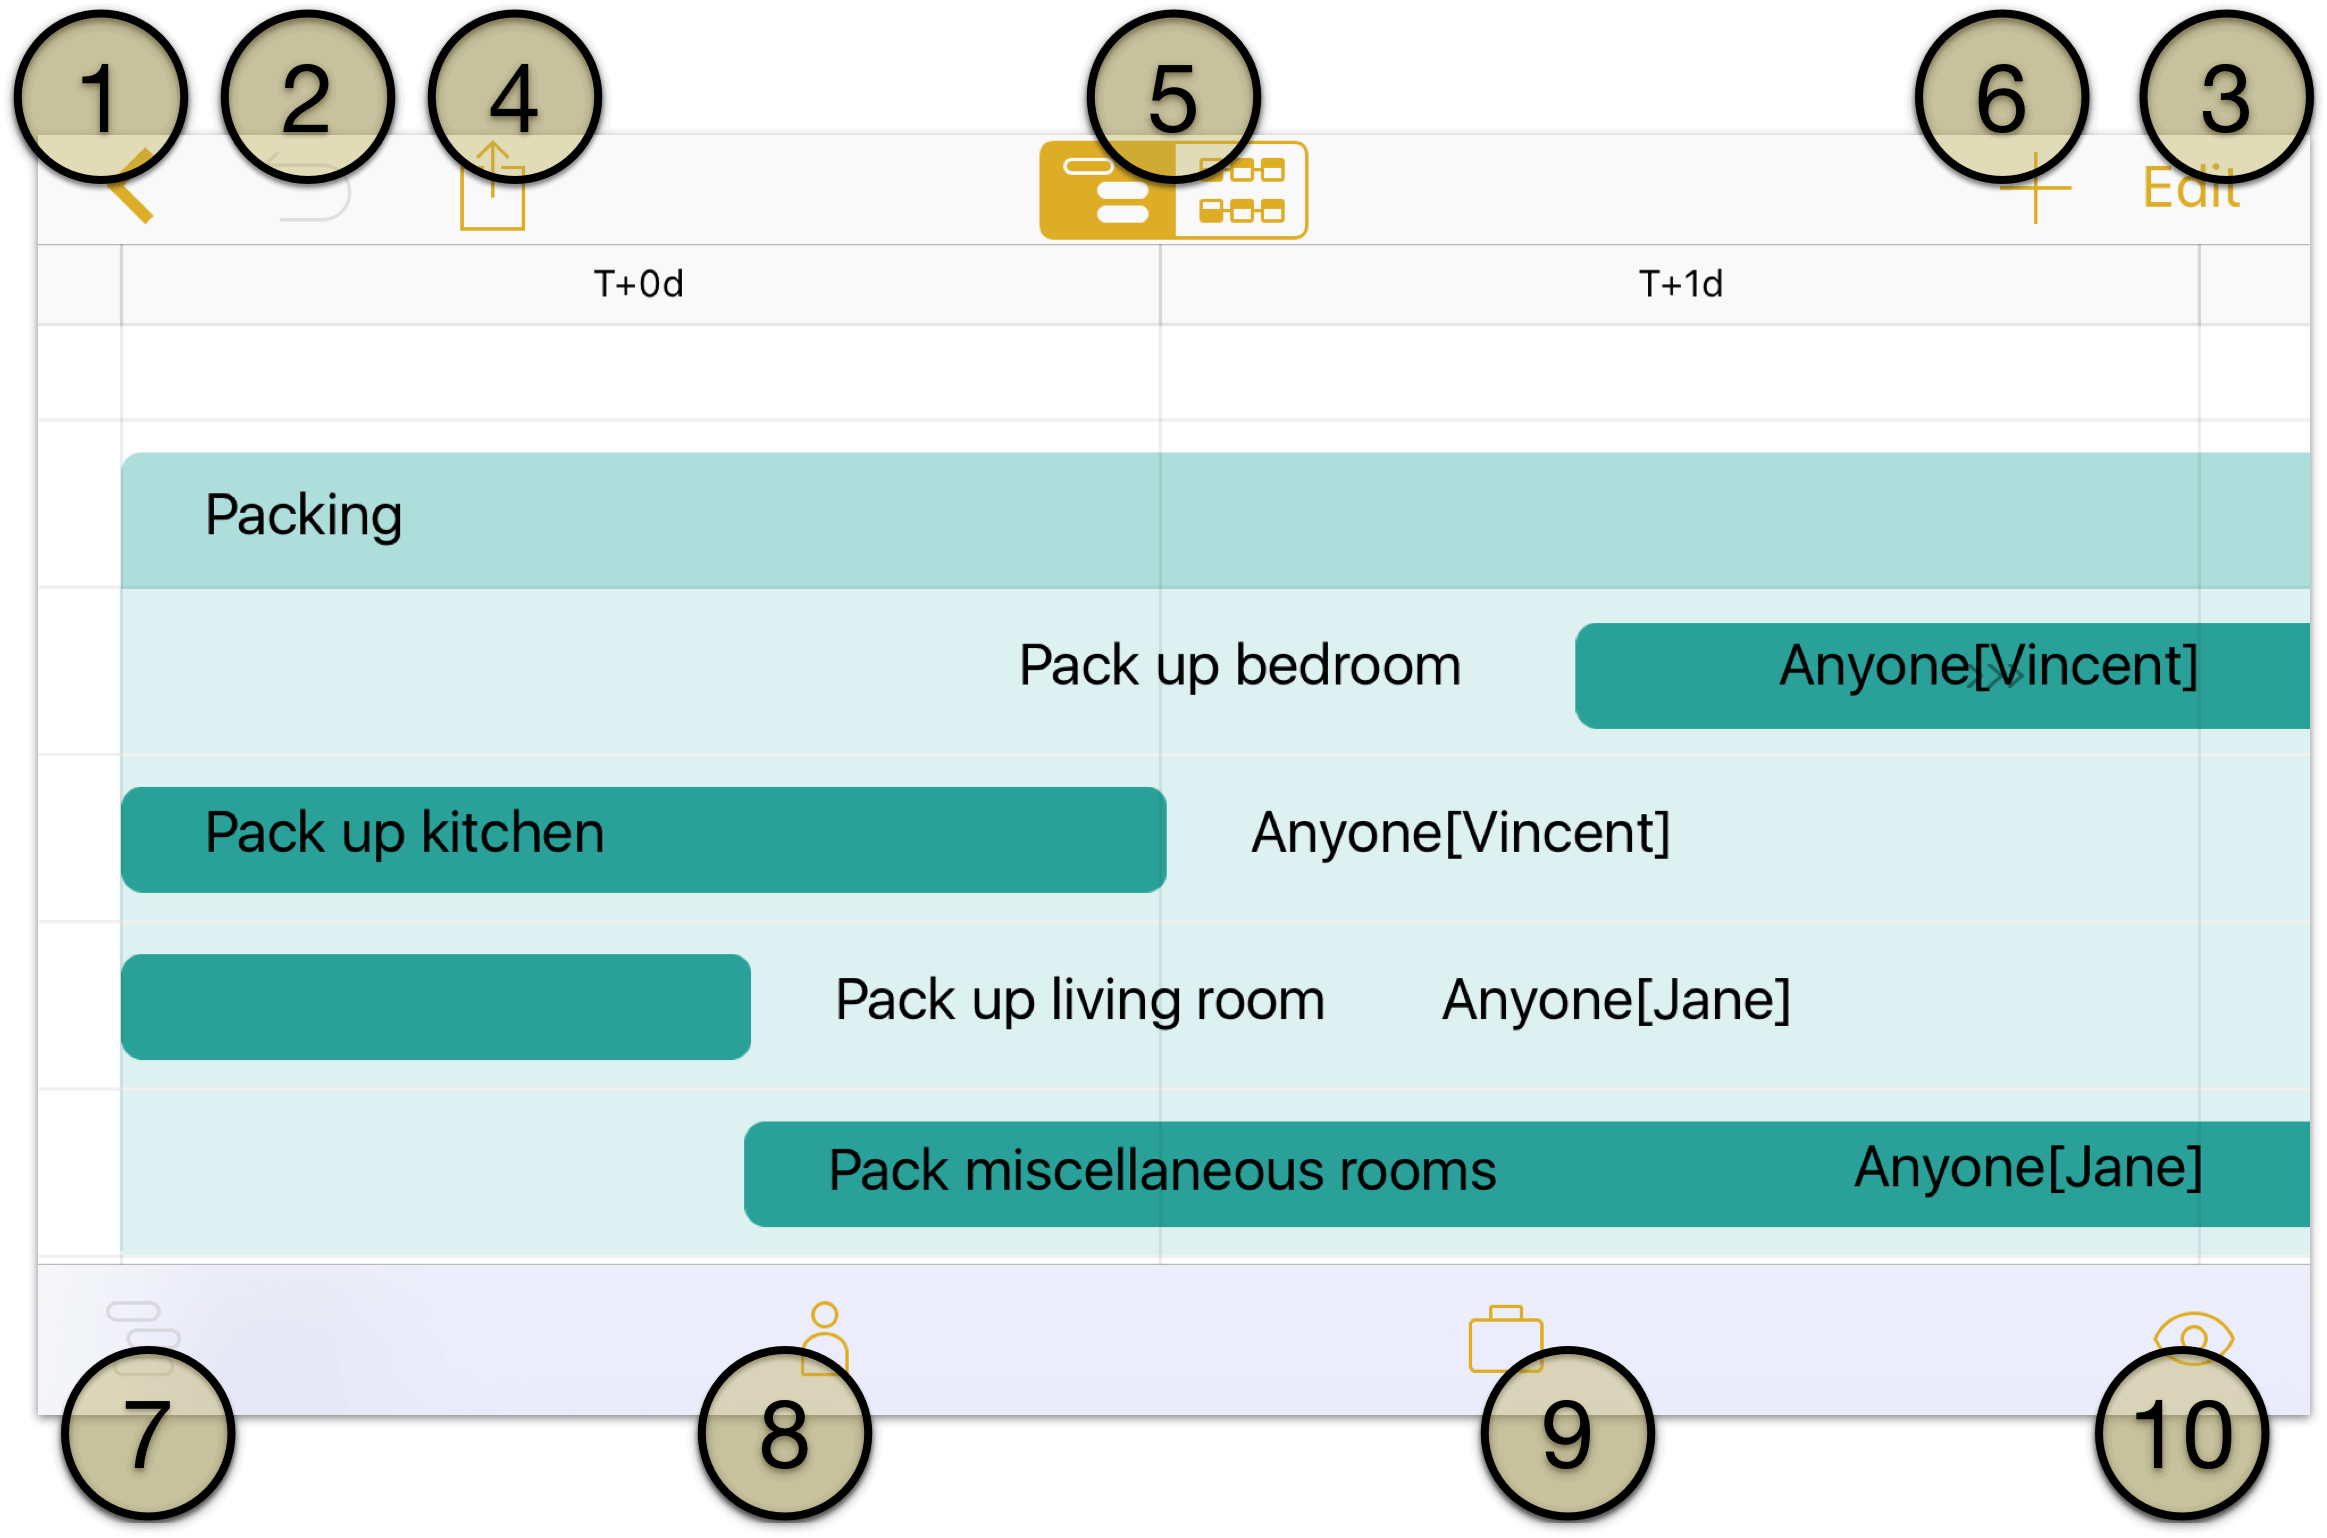 OmniPlan 3 for iOS User Manual - The Omni Group